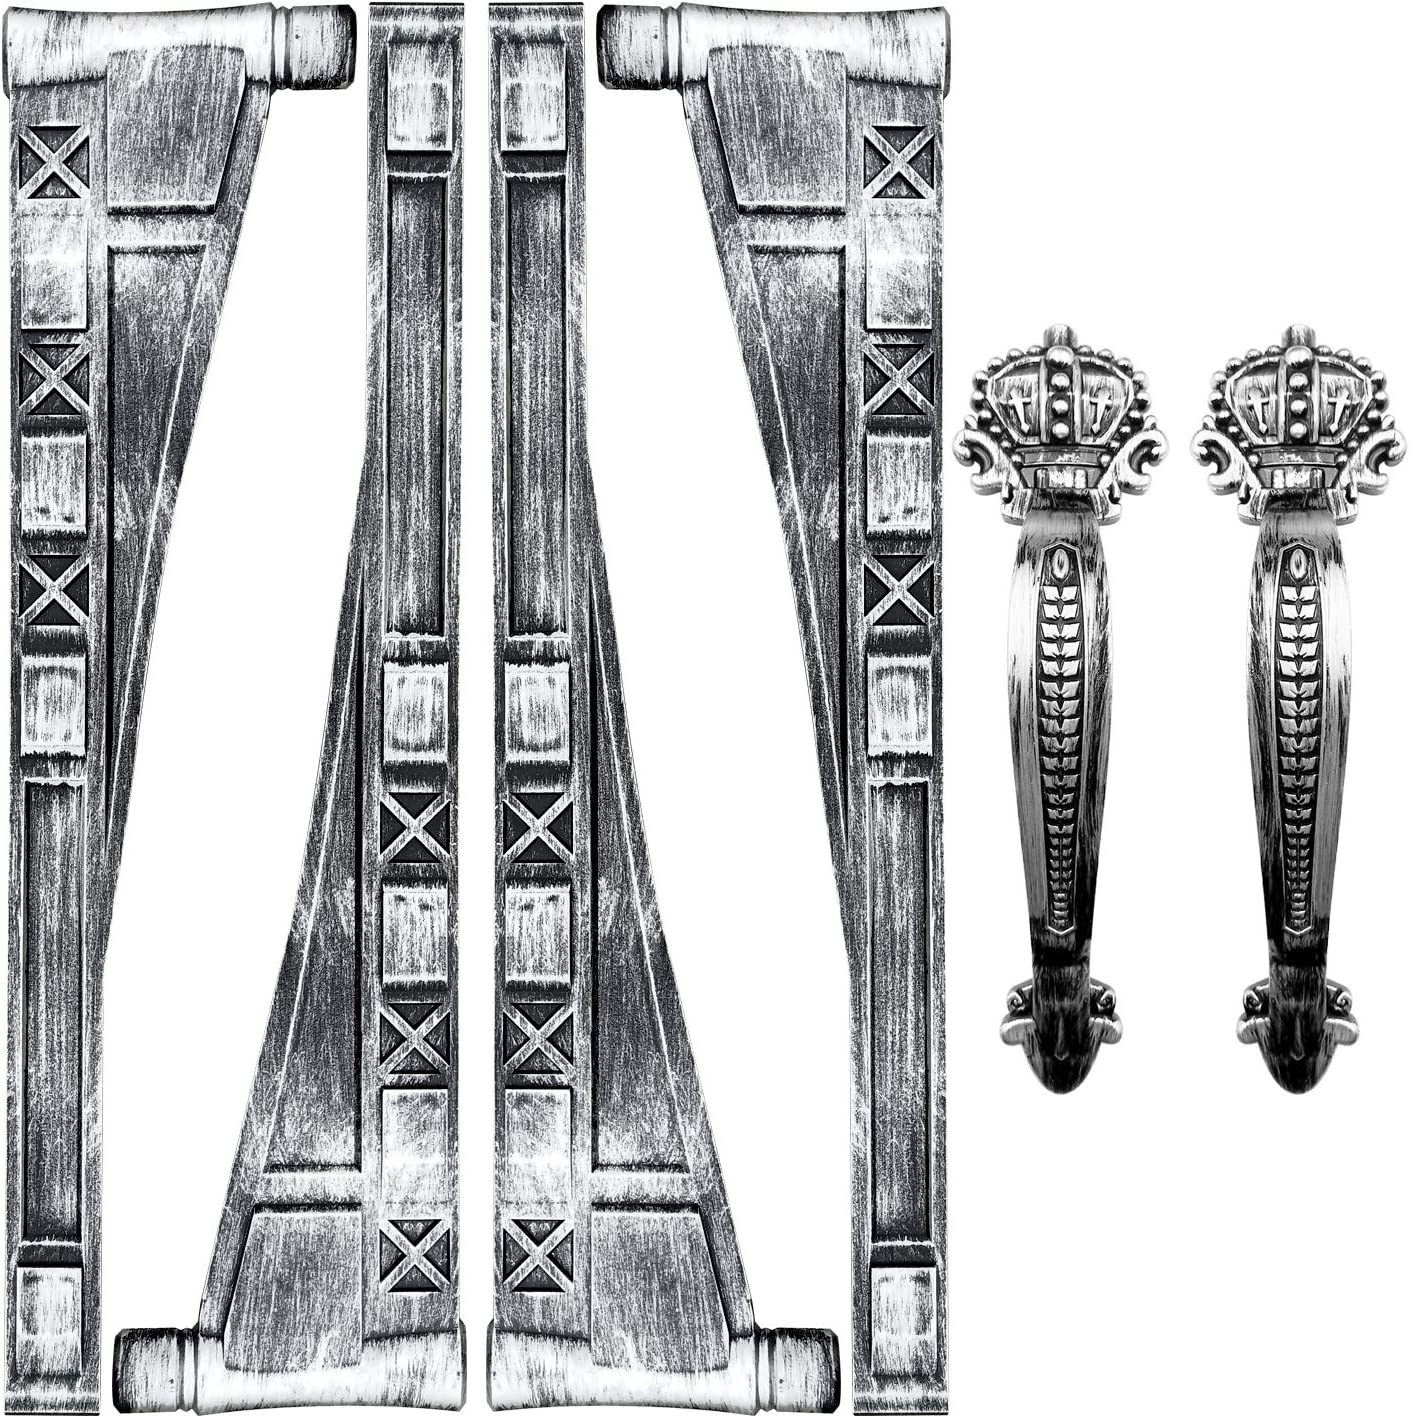 Magnetic Decorative Garage Door Accents Hardware Set, 4 Hinges& 2 Crown Style Handles, Magnet Mounted, Antique Silver